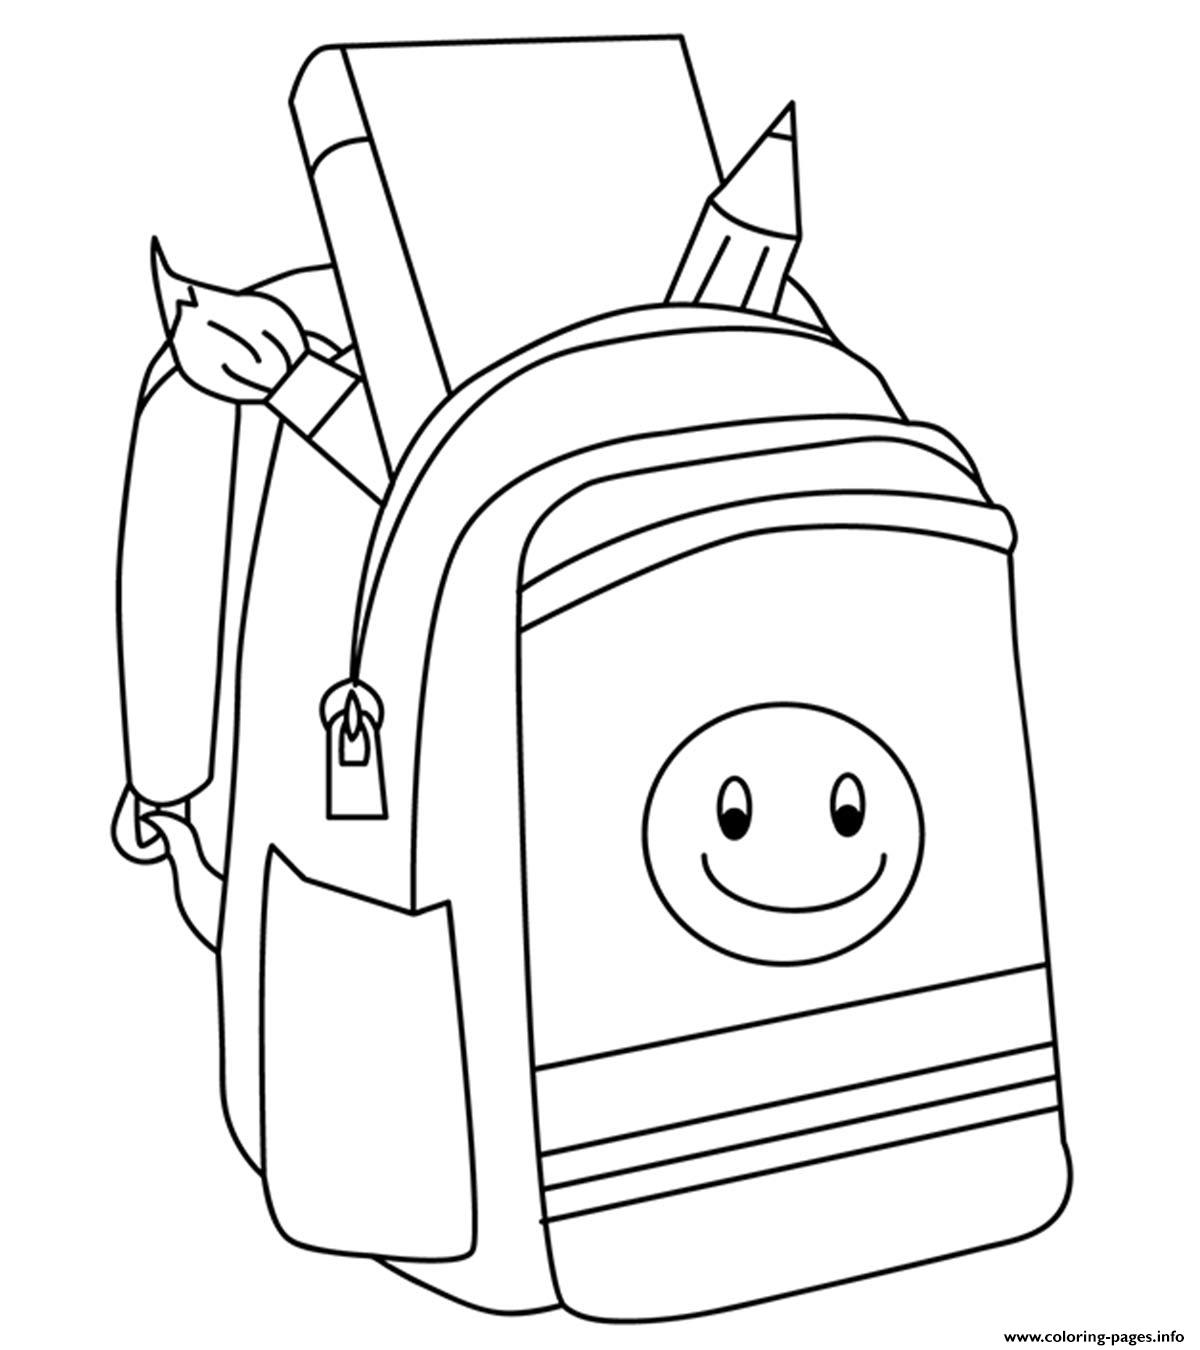 coloring school for kids back to school coloring page 2 universal publishing blog school kids coloring for